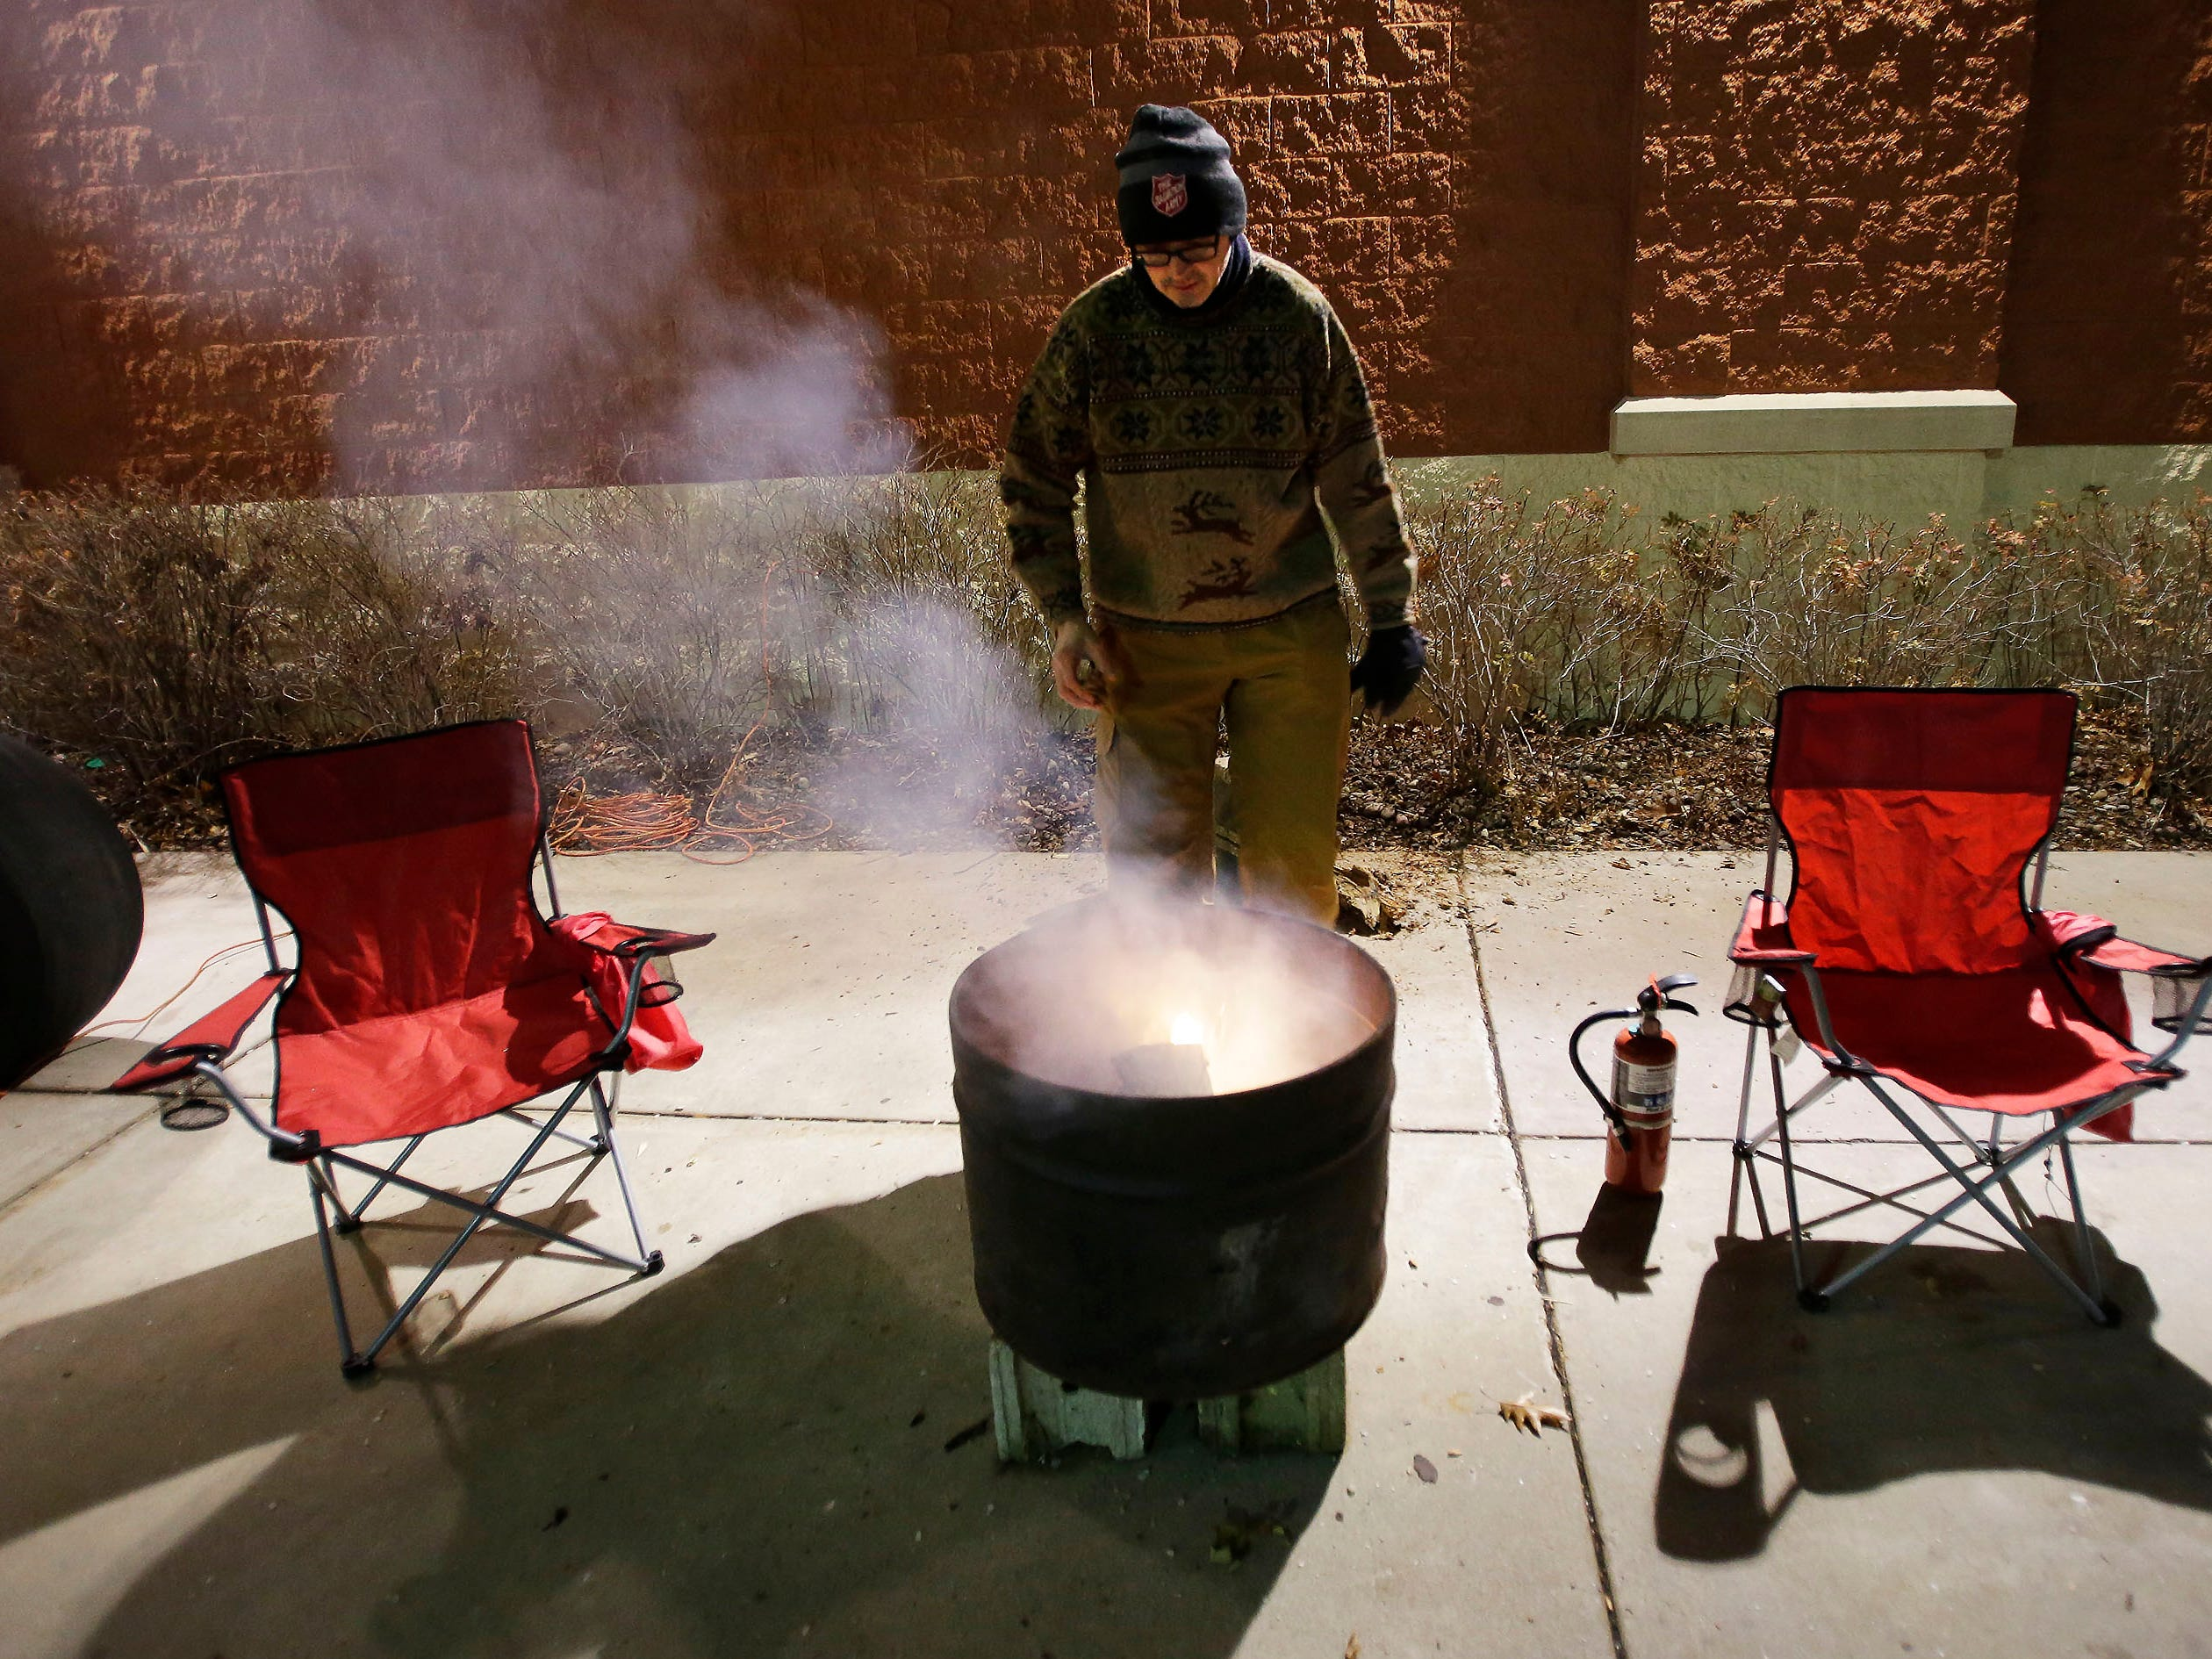 Salvation Army Captain Daryl Mangeri stands by a small fire he built in a barrel out side of Festival Foods, Wednesday, December 12, 2018, in Sheboygan, Wis. Mangeri is participating in Freezing for a Reason, which he says is to shine a light on the fact that there are homeless that live among us.